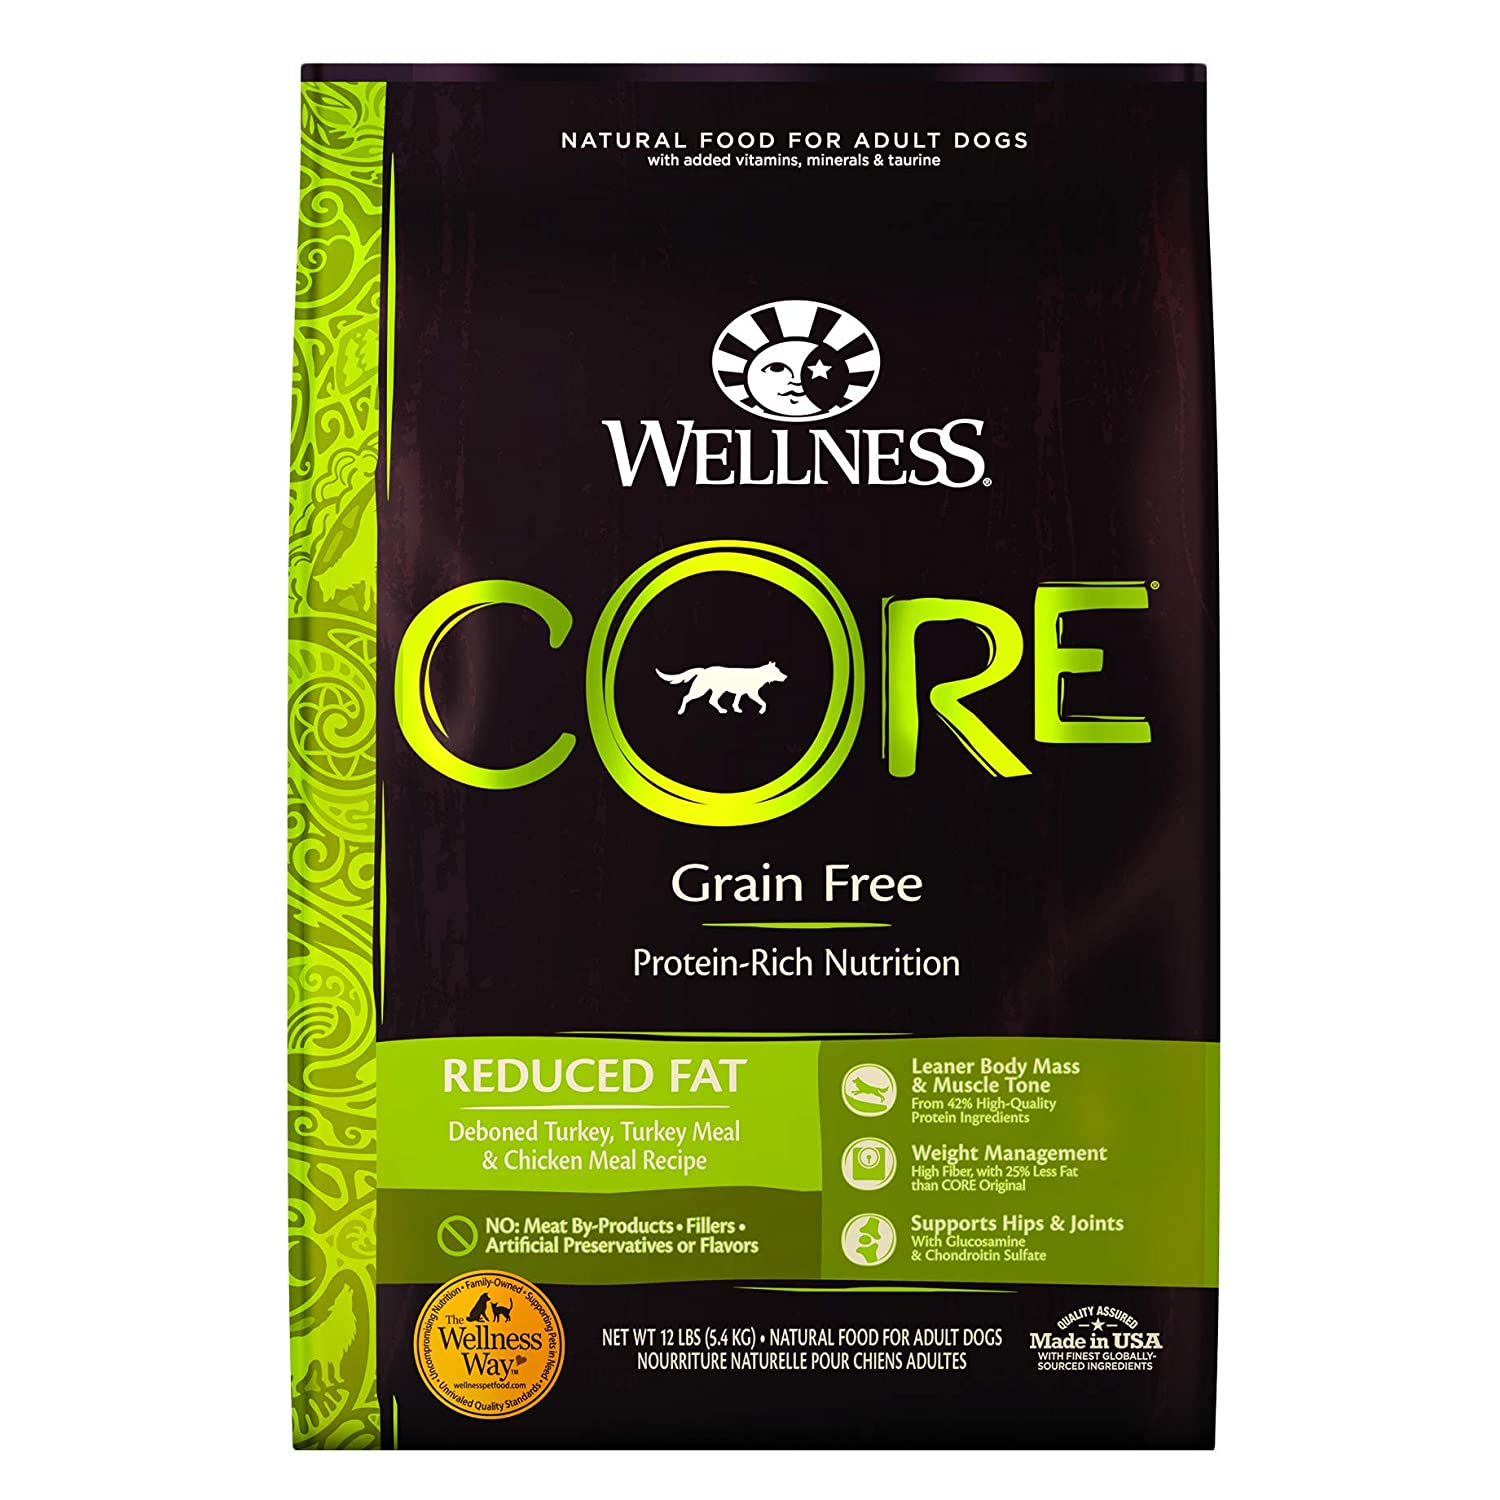 6. Wellness CORE Grain-Free Reduced Fat Turkey & Chicken Recipe Dry Dog Food